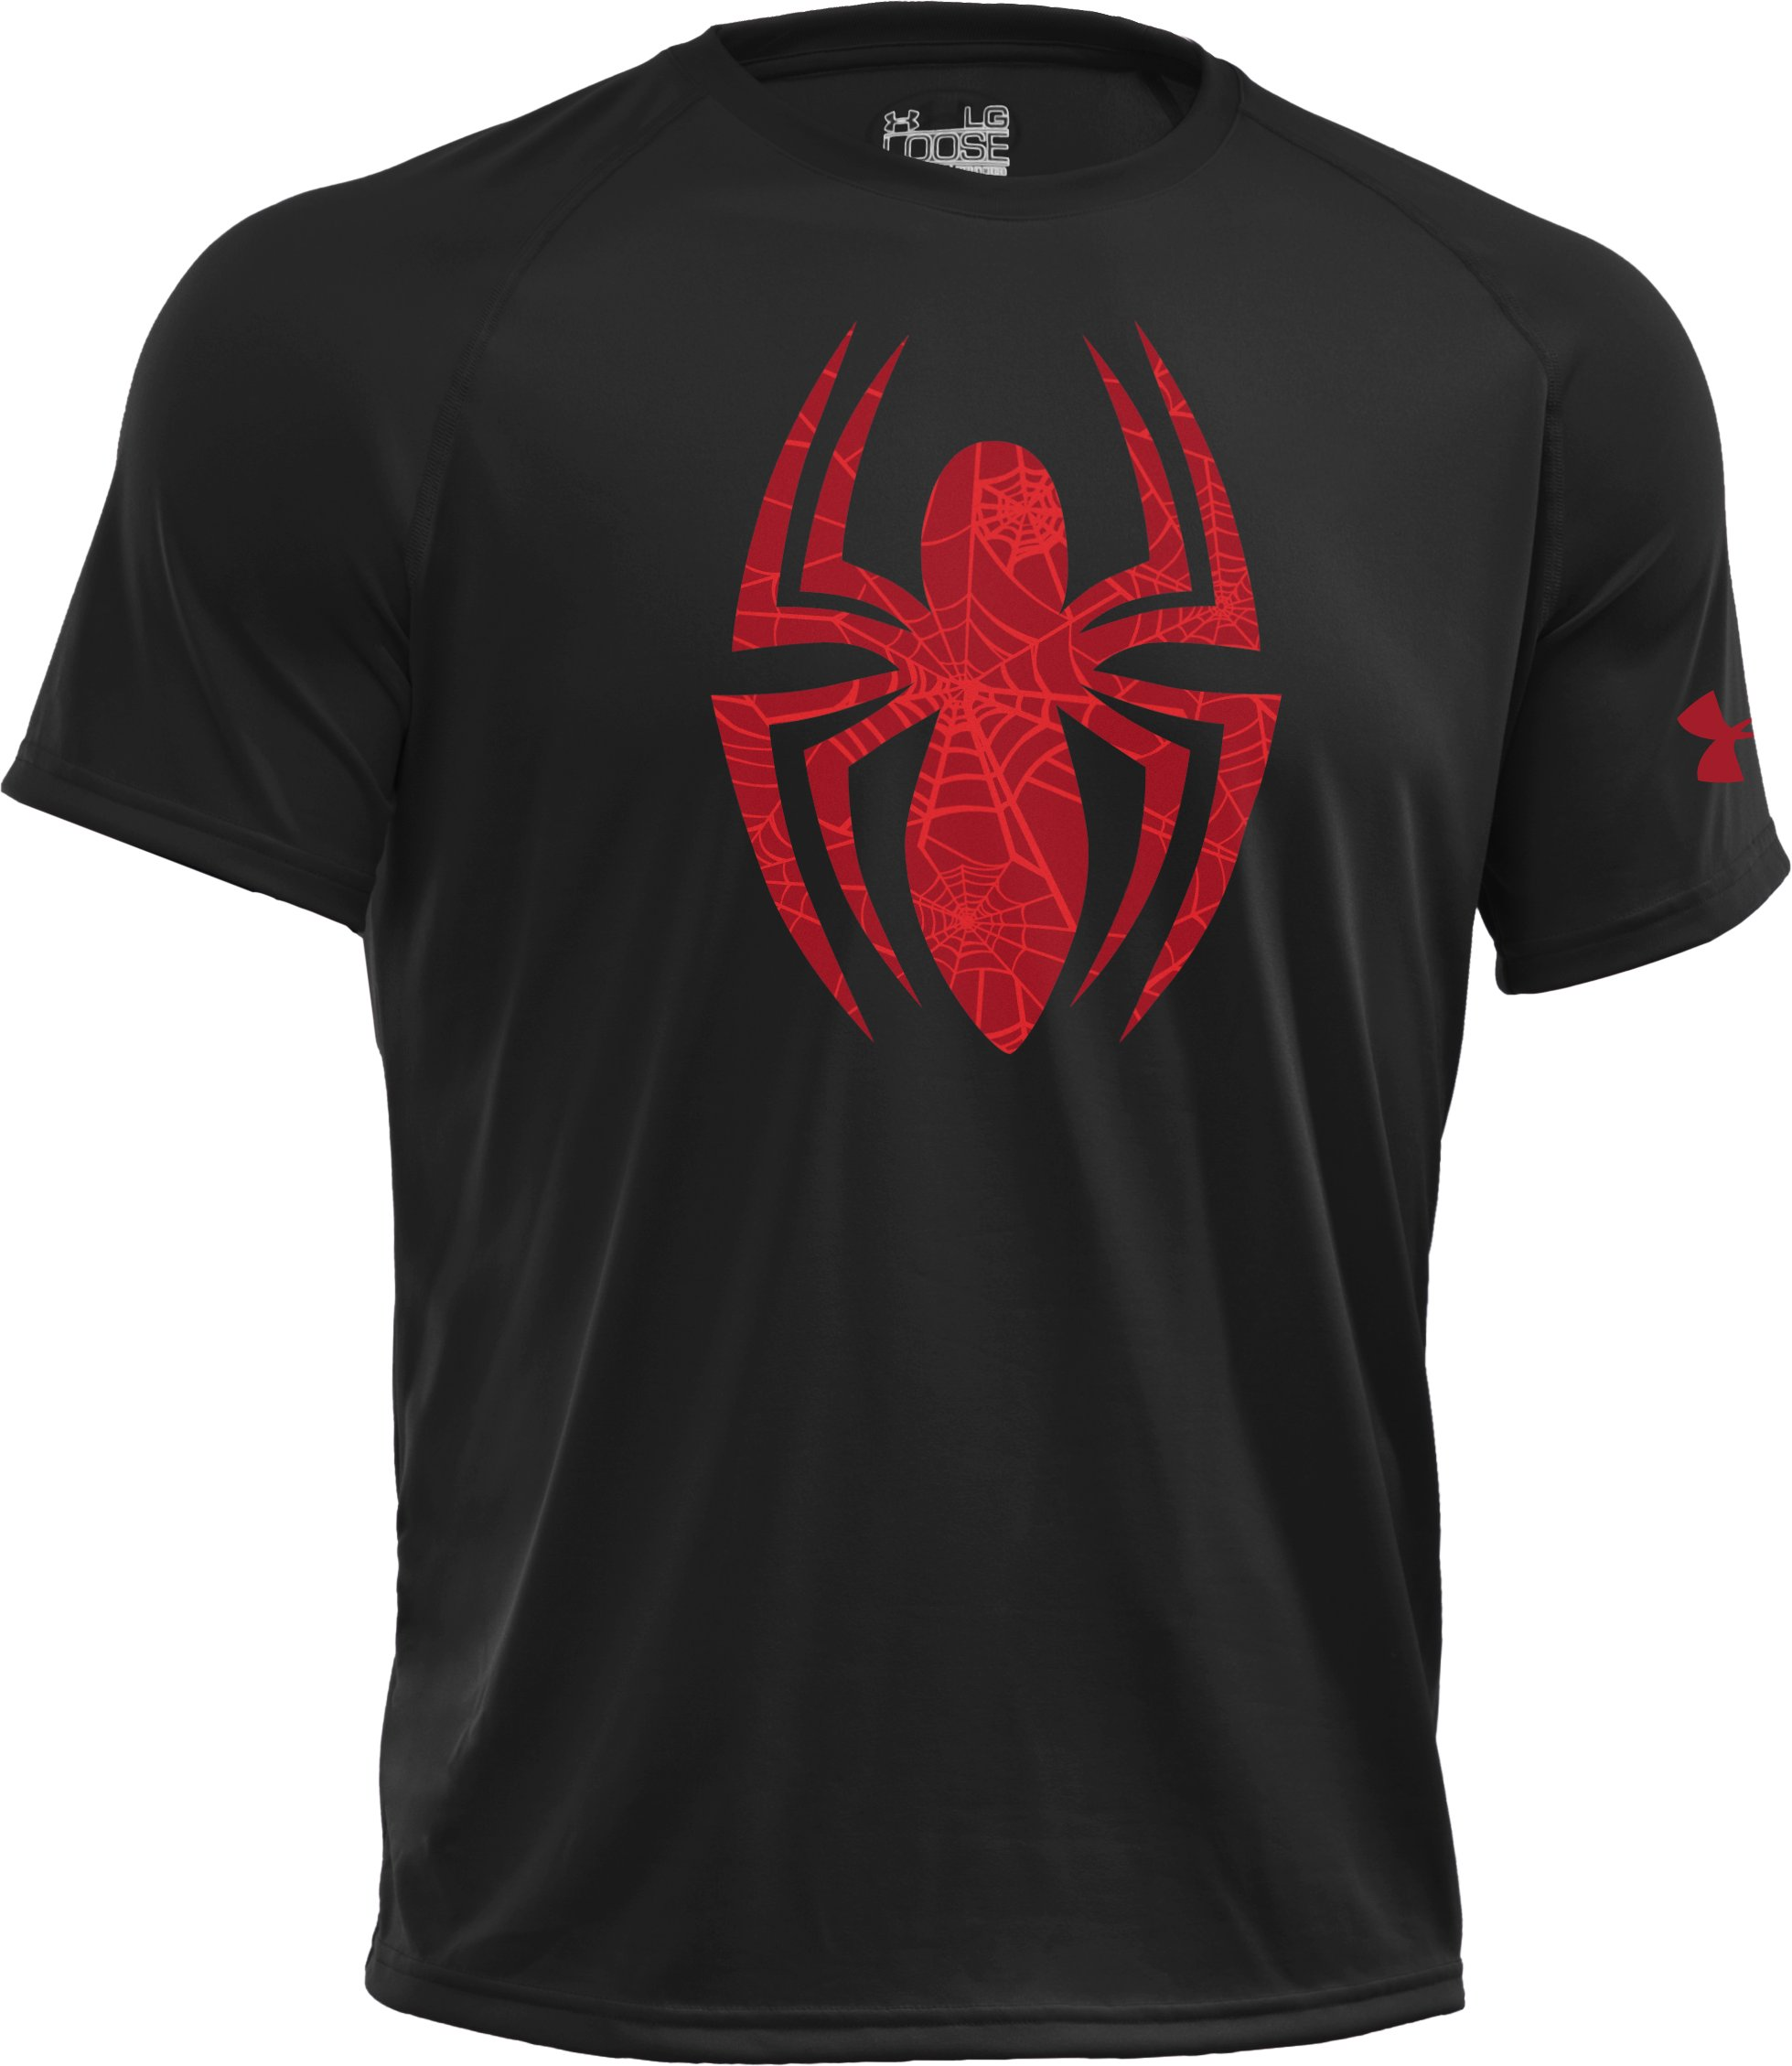 Men's Under Armour® Alter Ego Spider-Man T-Shirt, Black